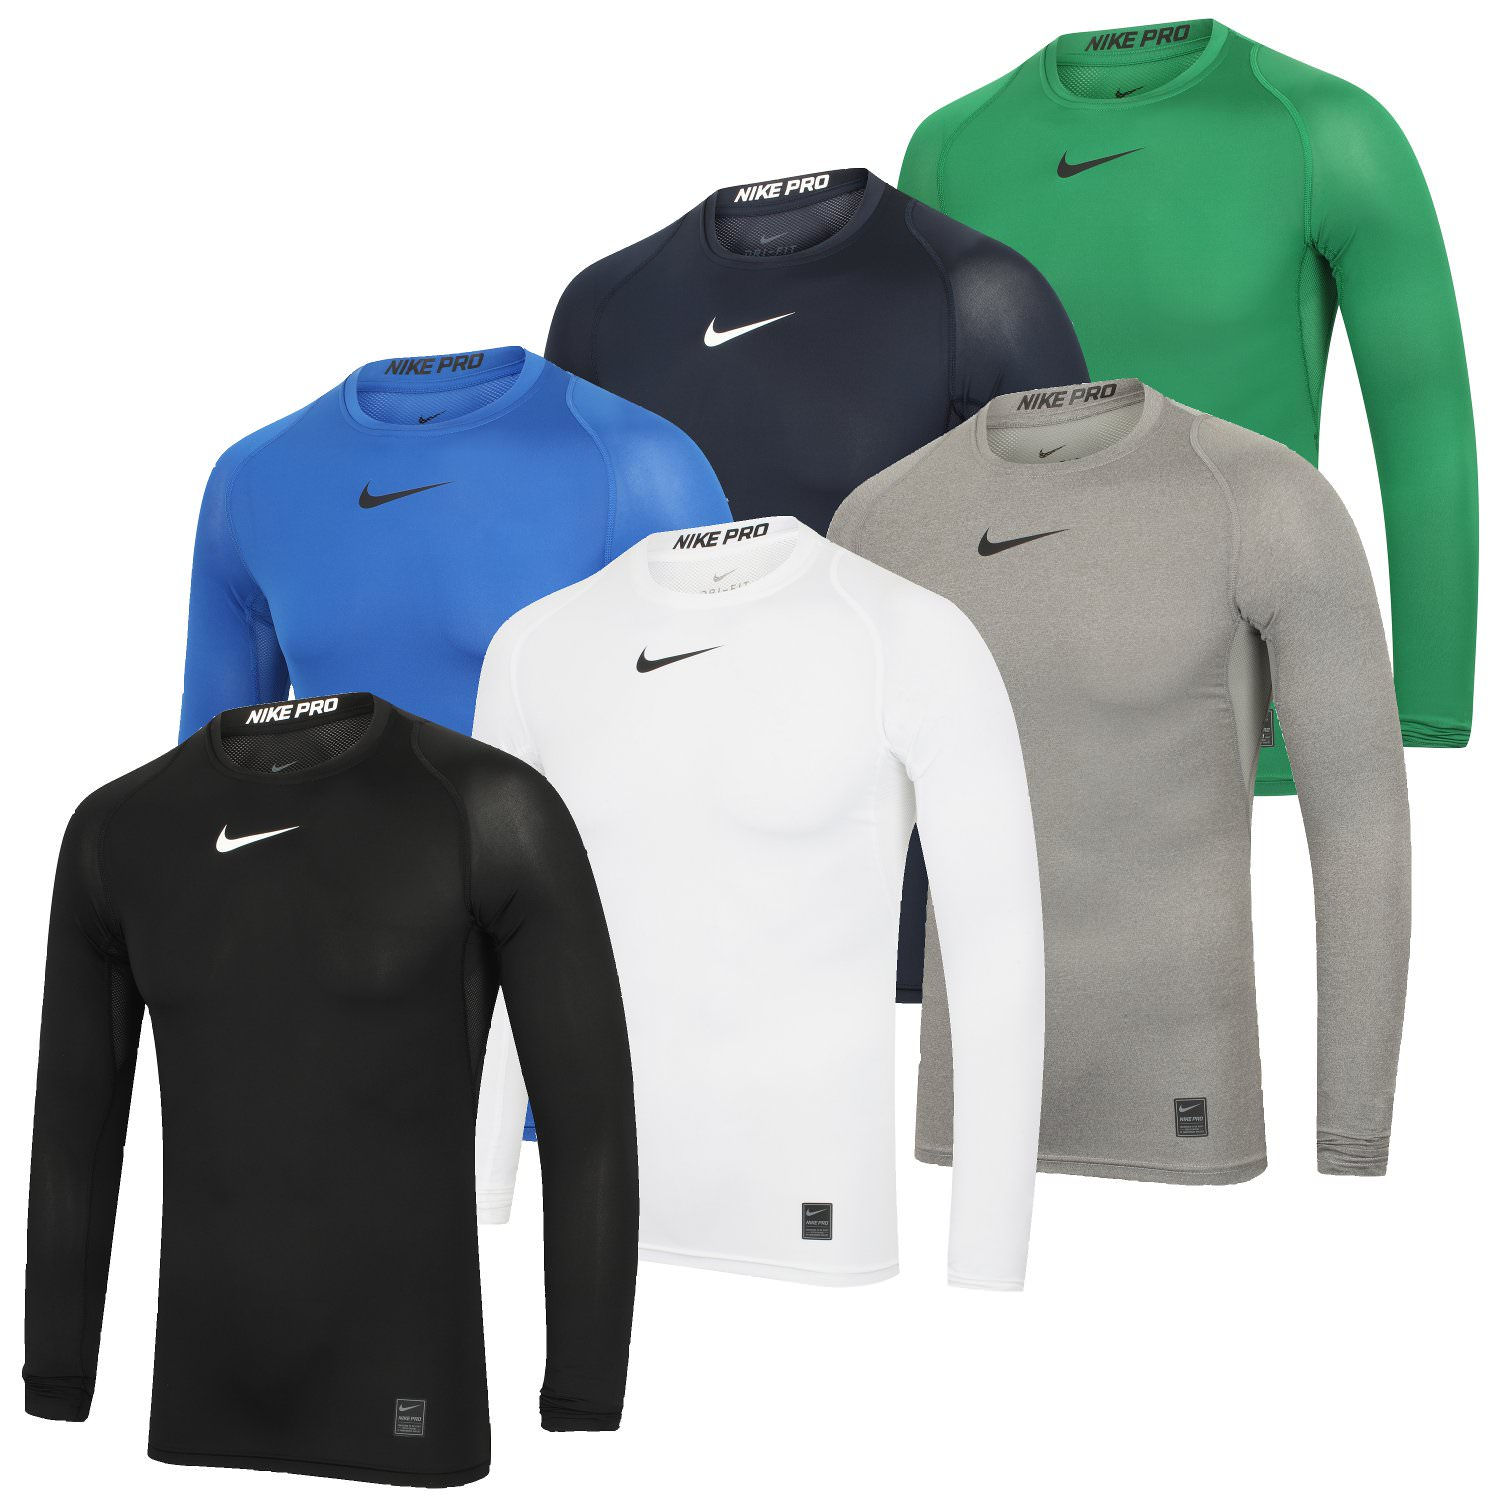 911b6214 Details about Nike Mens Pro Dri-Fit Compression Gym Training Top Long  Sleeve Baselayer T-Shirt